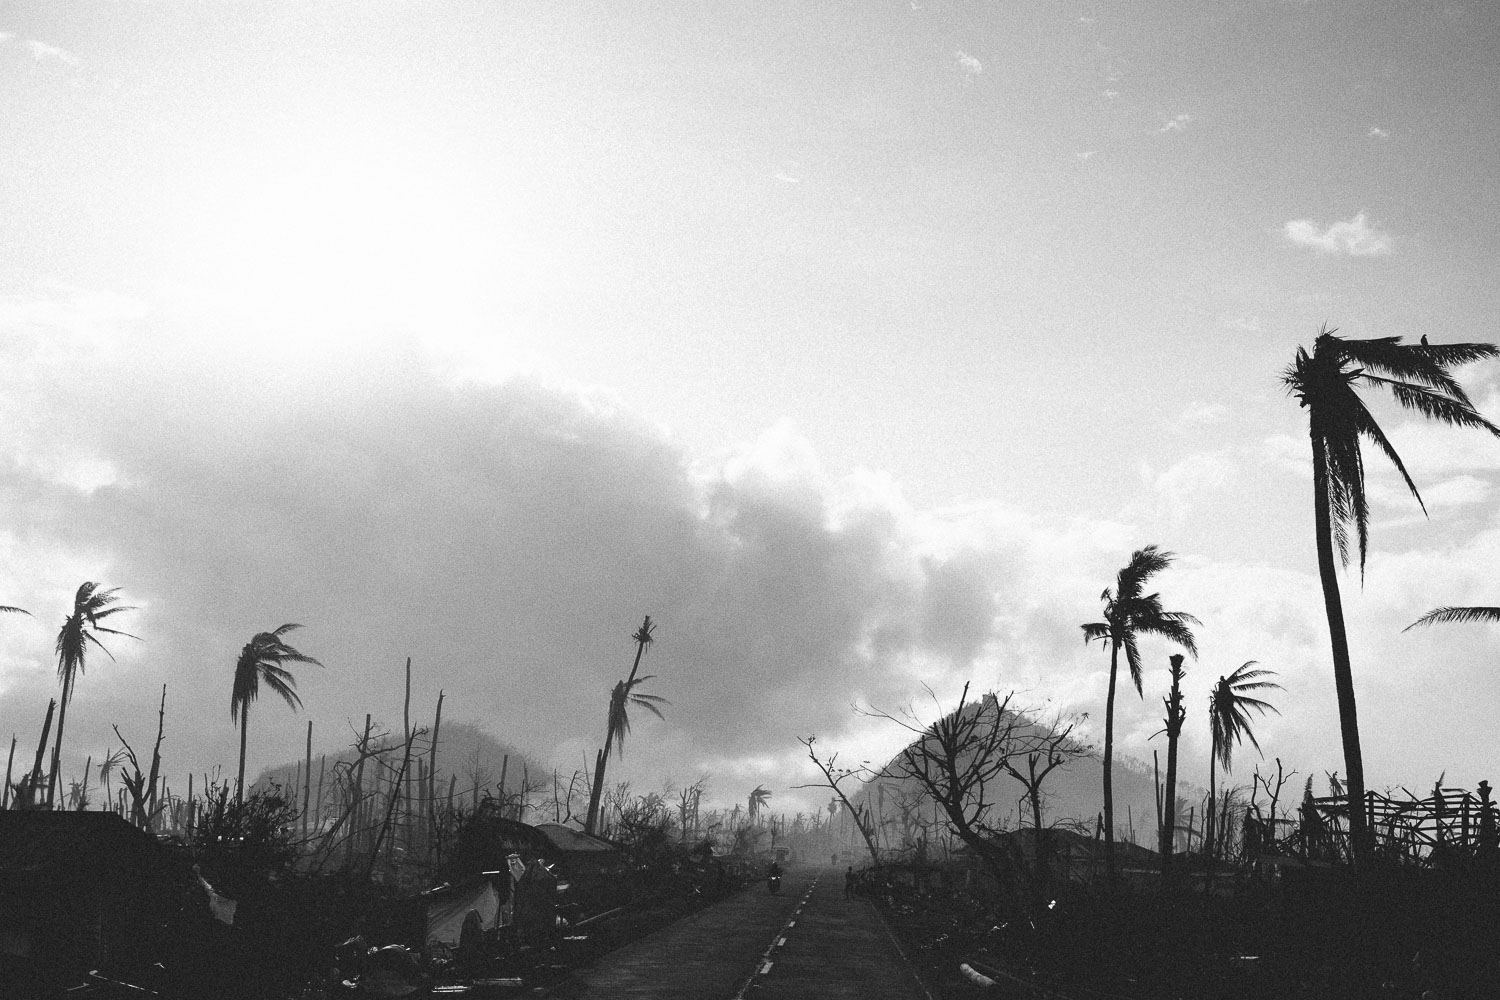 Village of Tolosa, Leyte Province, Philippines. The second site where Typhoon Haiyan (Yolanda) made landfall. With sustained wind speeds of 250 km/t vast areas of coconut farming were destroyed leaving an apocalyptic wasteland behind.